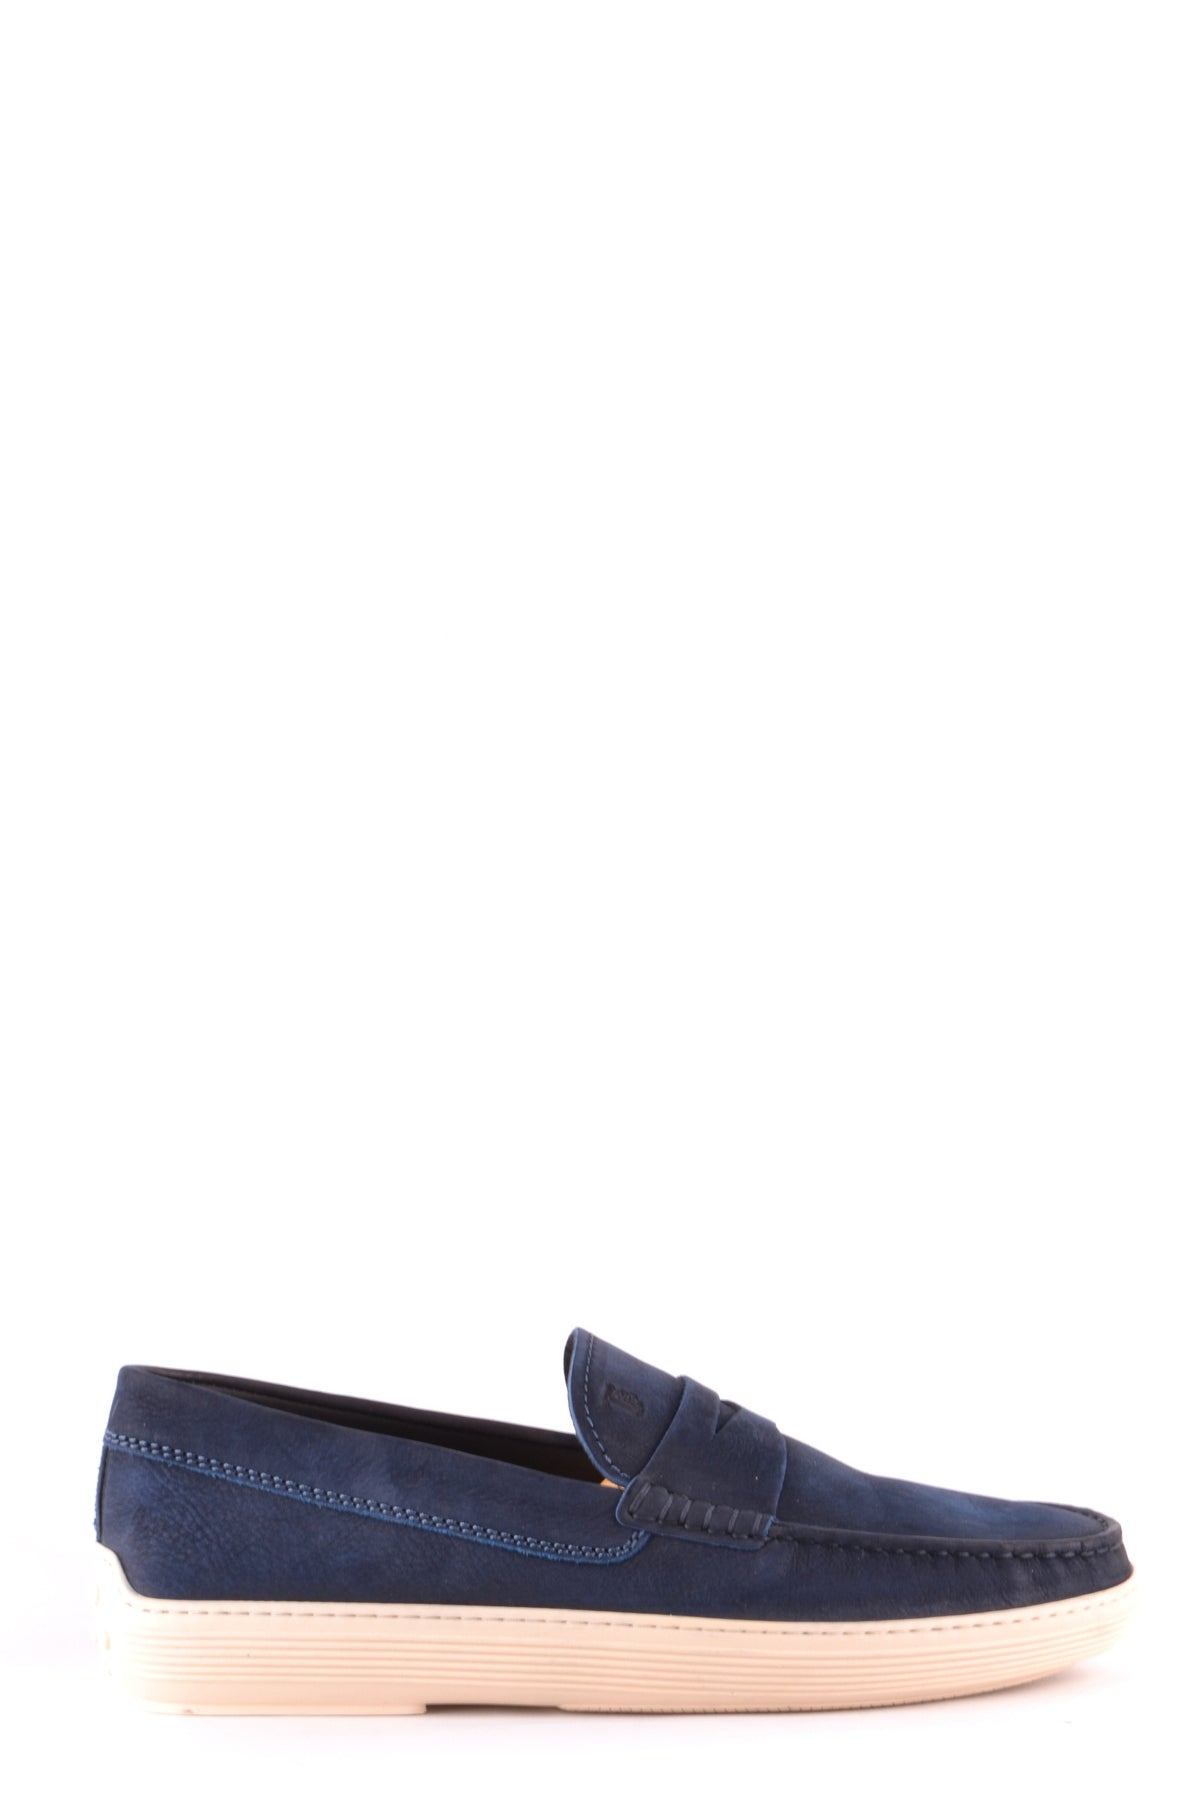 Shoes Tod'S-Moccasins - Shoes-6-Product Details Type Of Accessory: ShoesSeason: Spring / SummerTerms: New With LabelMain Color: BlueGender: ManMade In: ItalyManufacturer Part Number: Xxm0Yt00010Fl1U616Size: UkYear: 2018Composition: Suede 100%-Keyomi-Sook